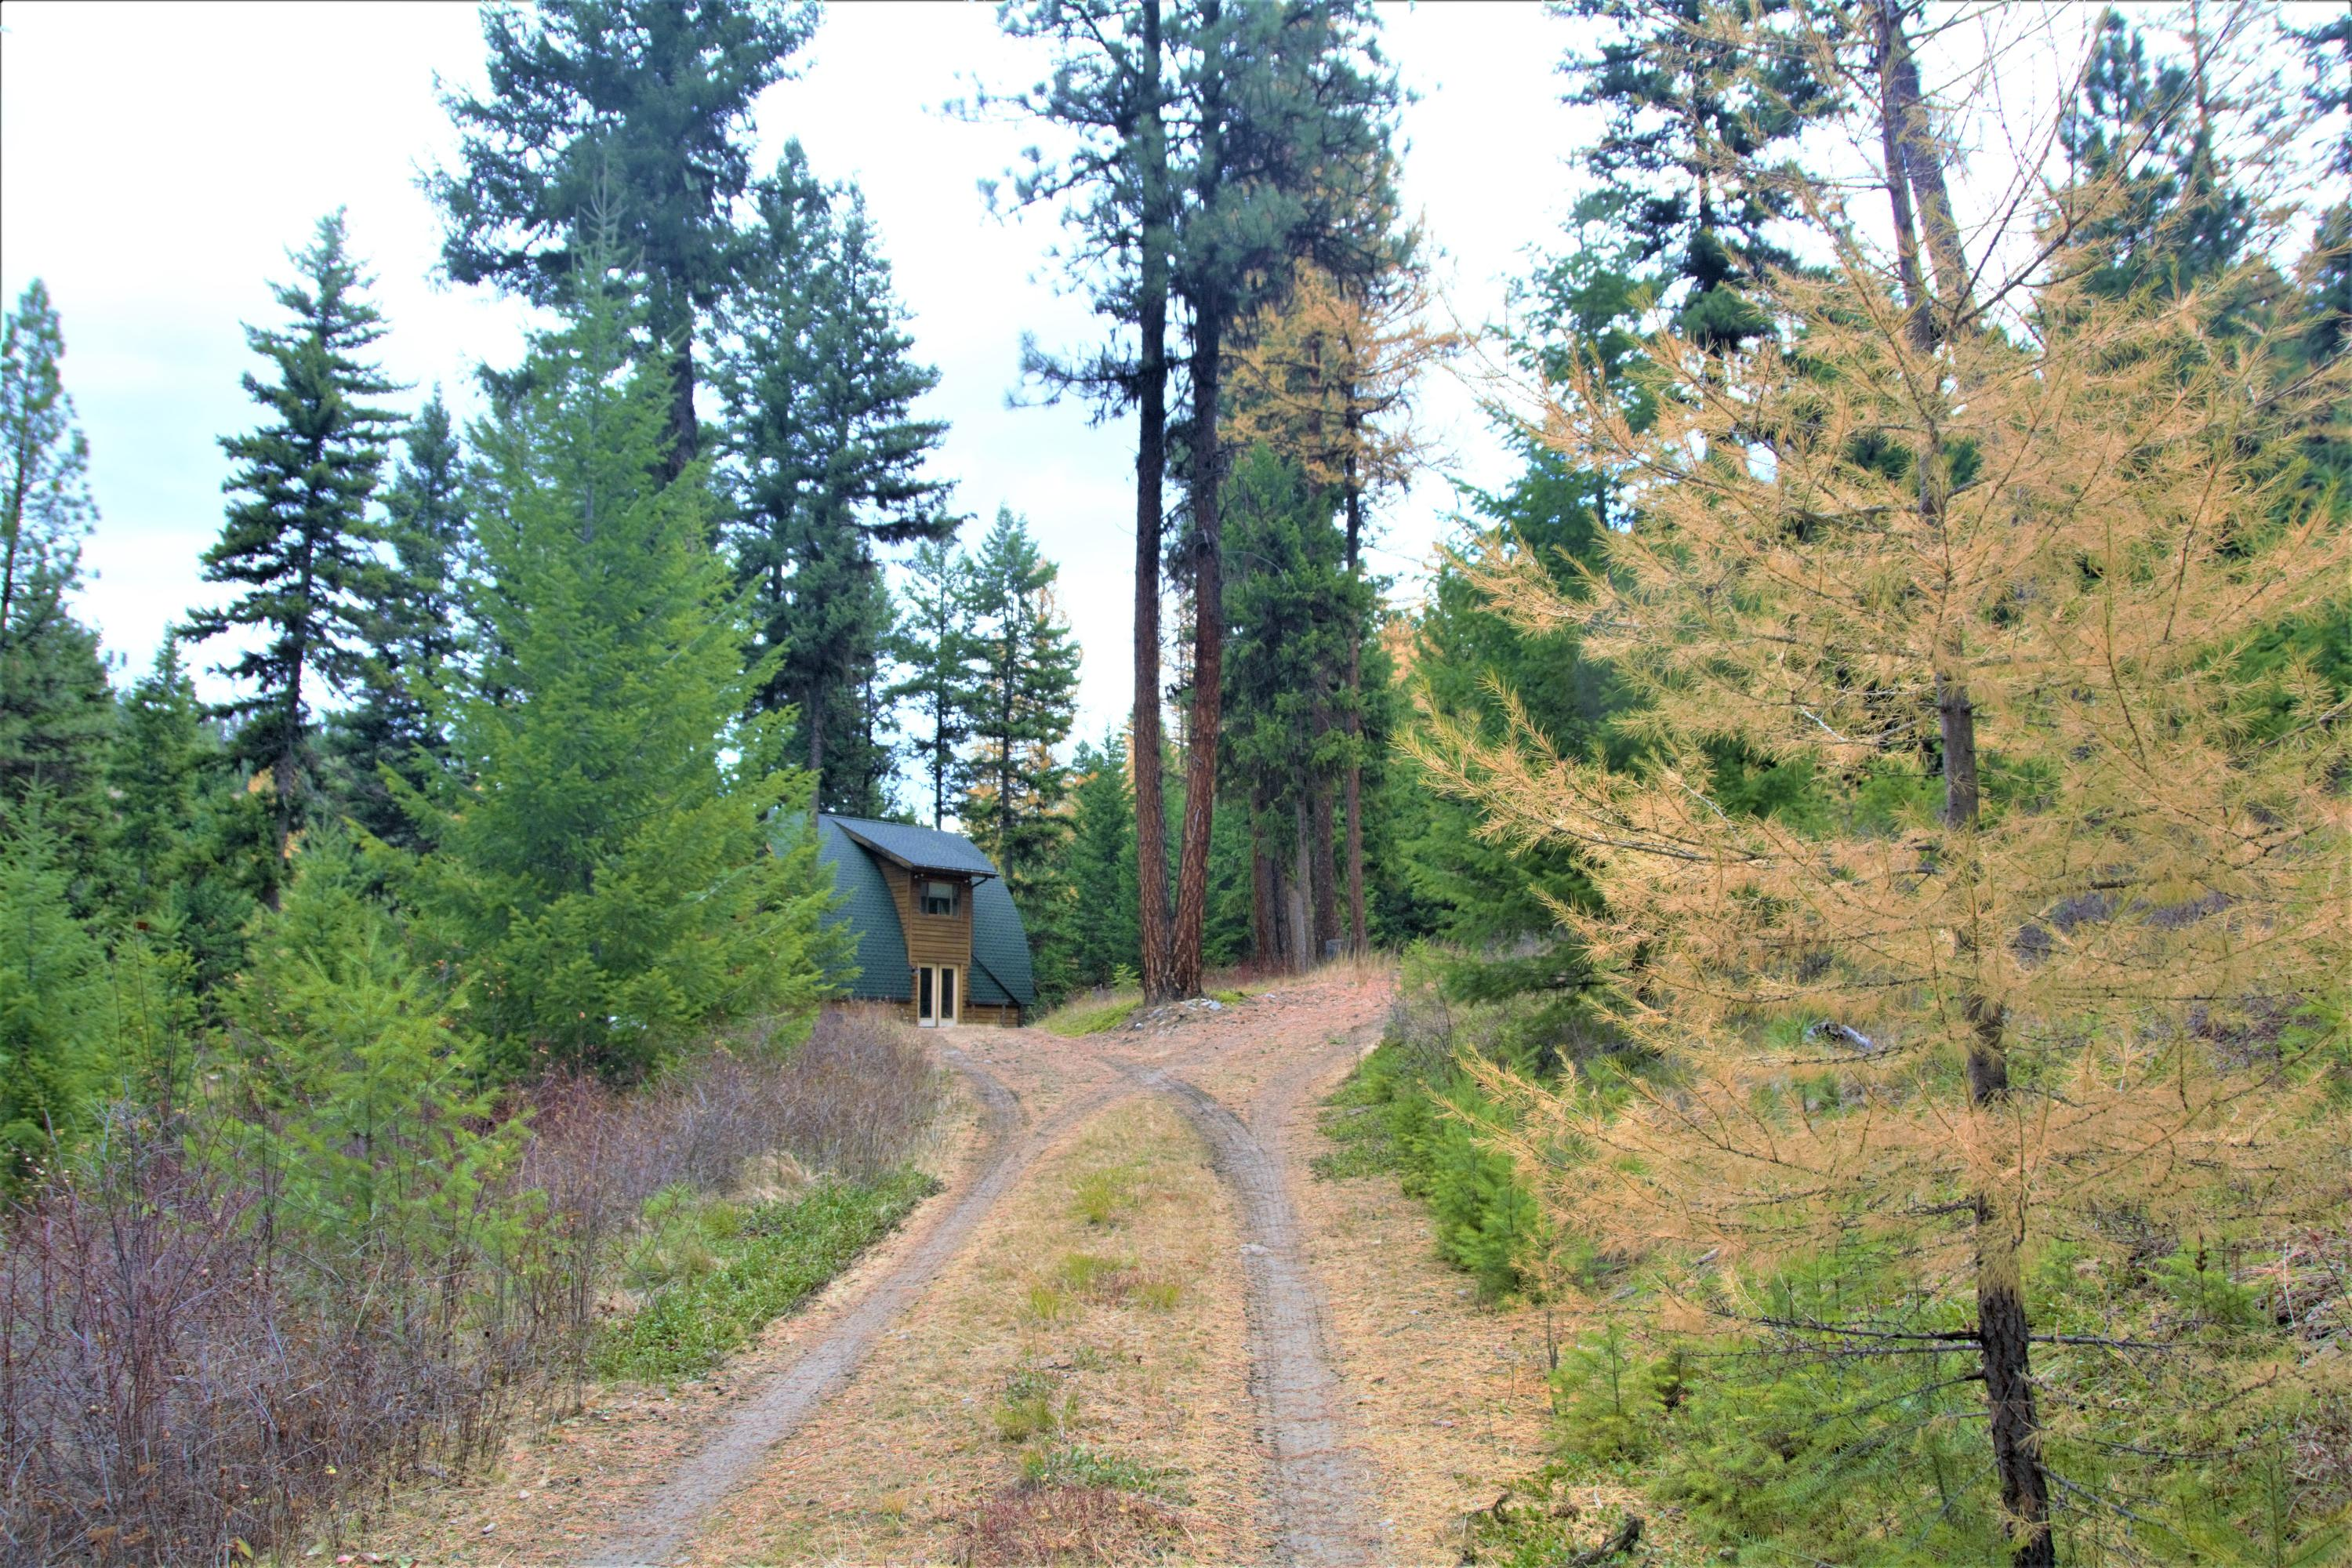 Driveway to Cabin for Sale